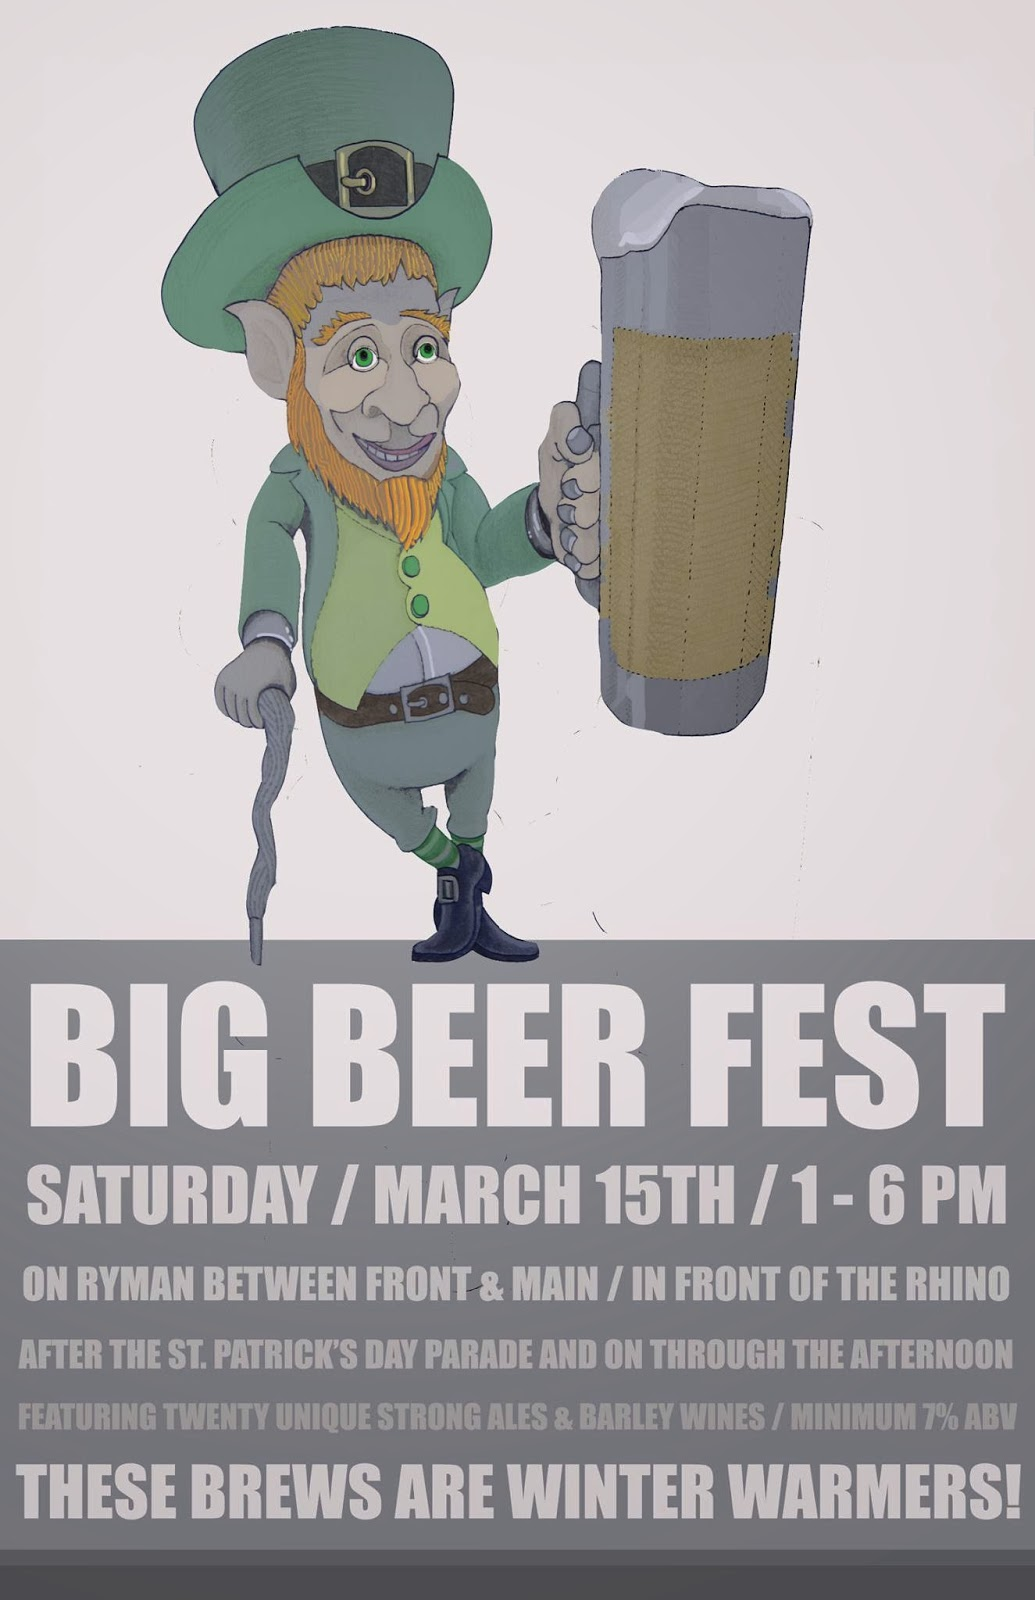 Big Beer Fest - The Rhino - Missoula